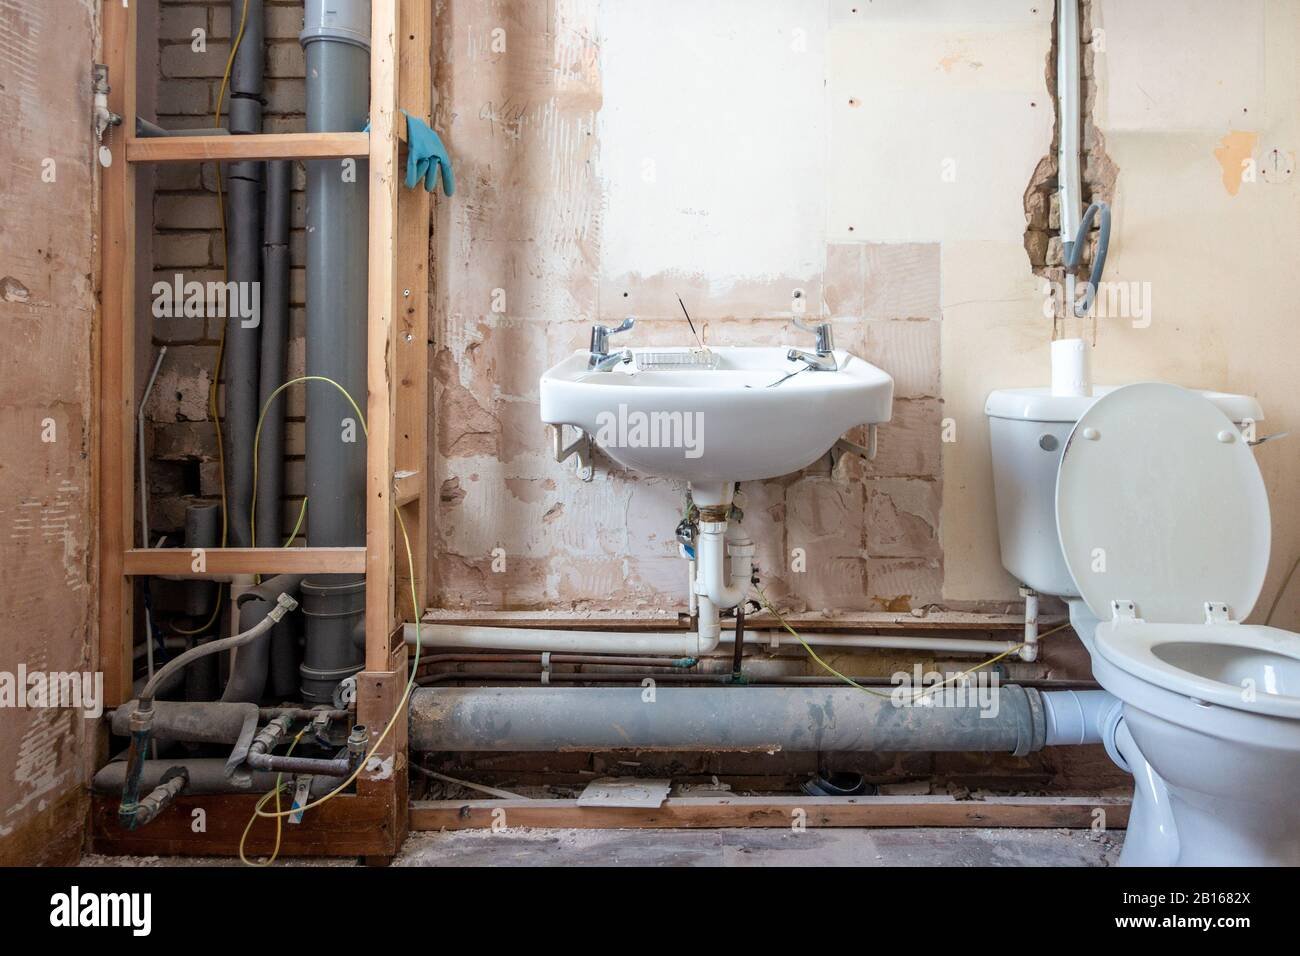 a-bathroom-stripped-bare-as-it-is-being-refurbished-and-modernised-pipes-plumbing-and-electrics-are-exposed-2B1682X.jpg